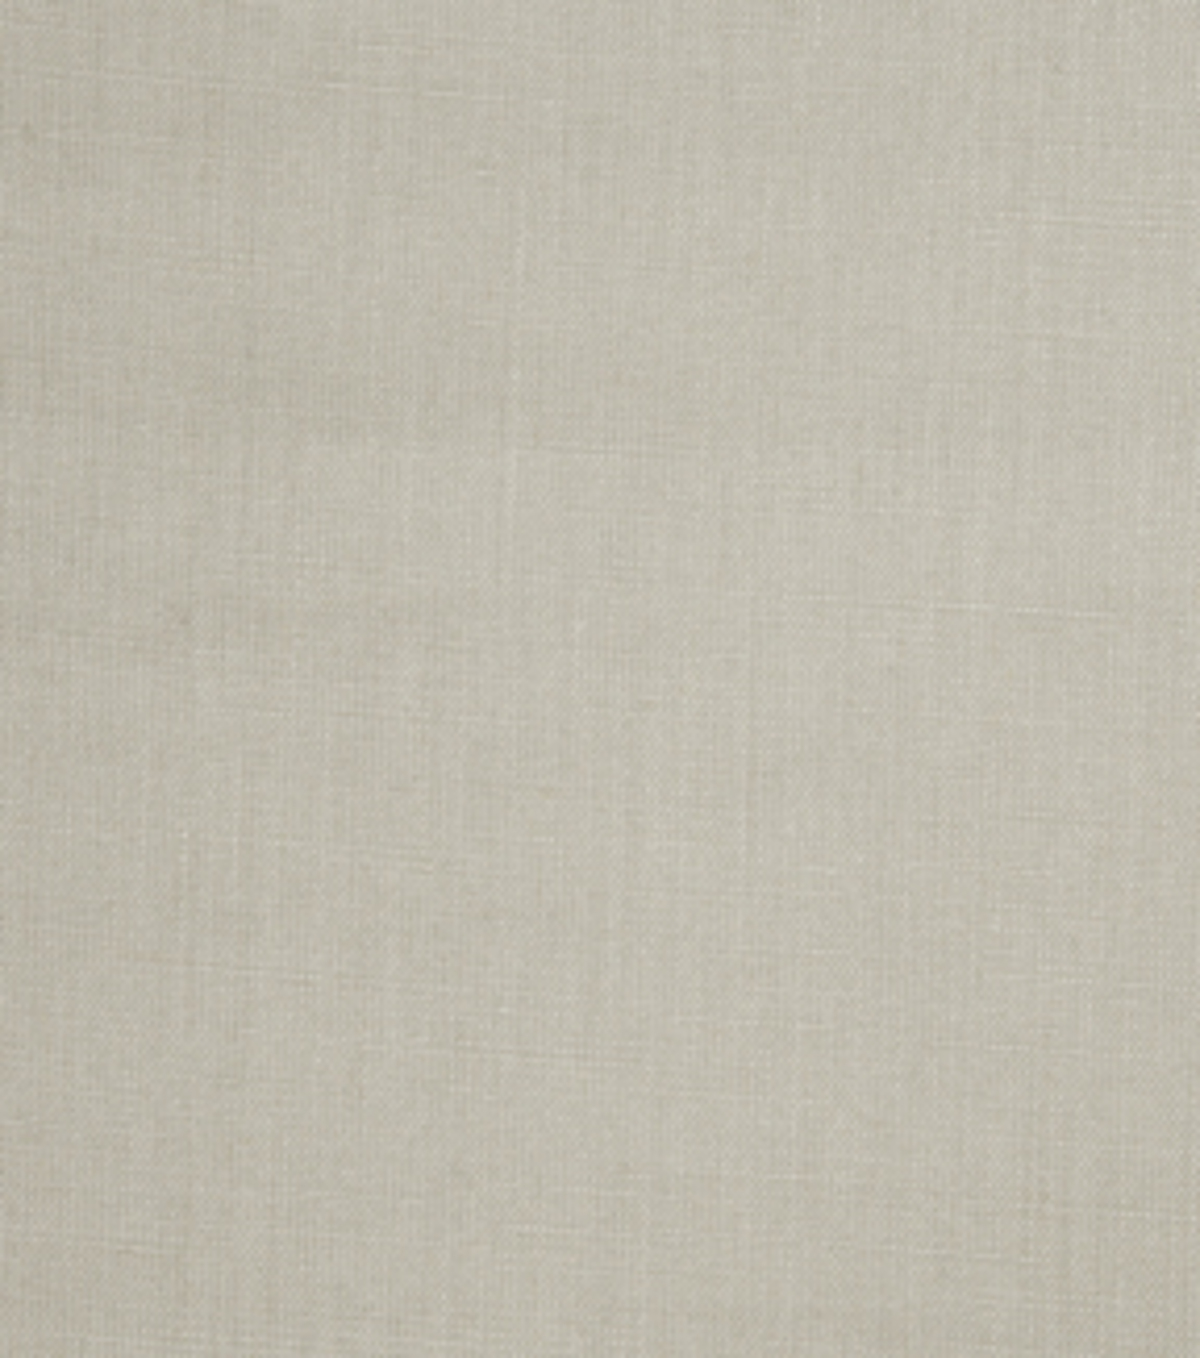 Home Decor 8\u0022x8\u0022 Fabric Swatch-Signature Series Sigourney Pebble